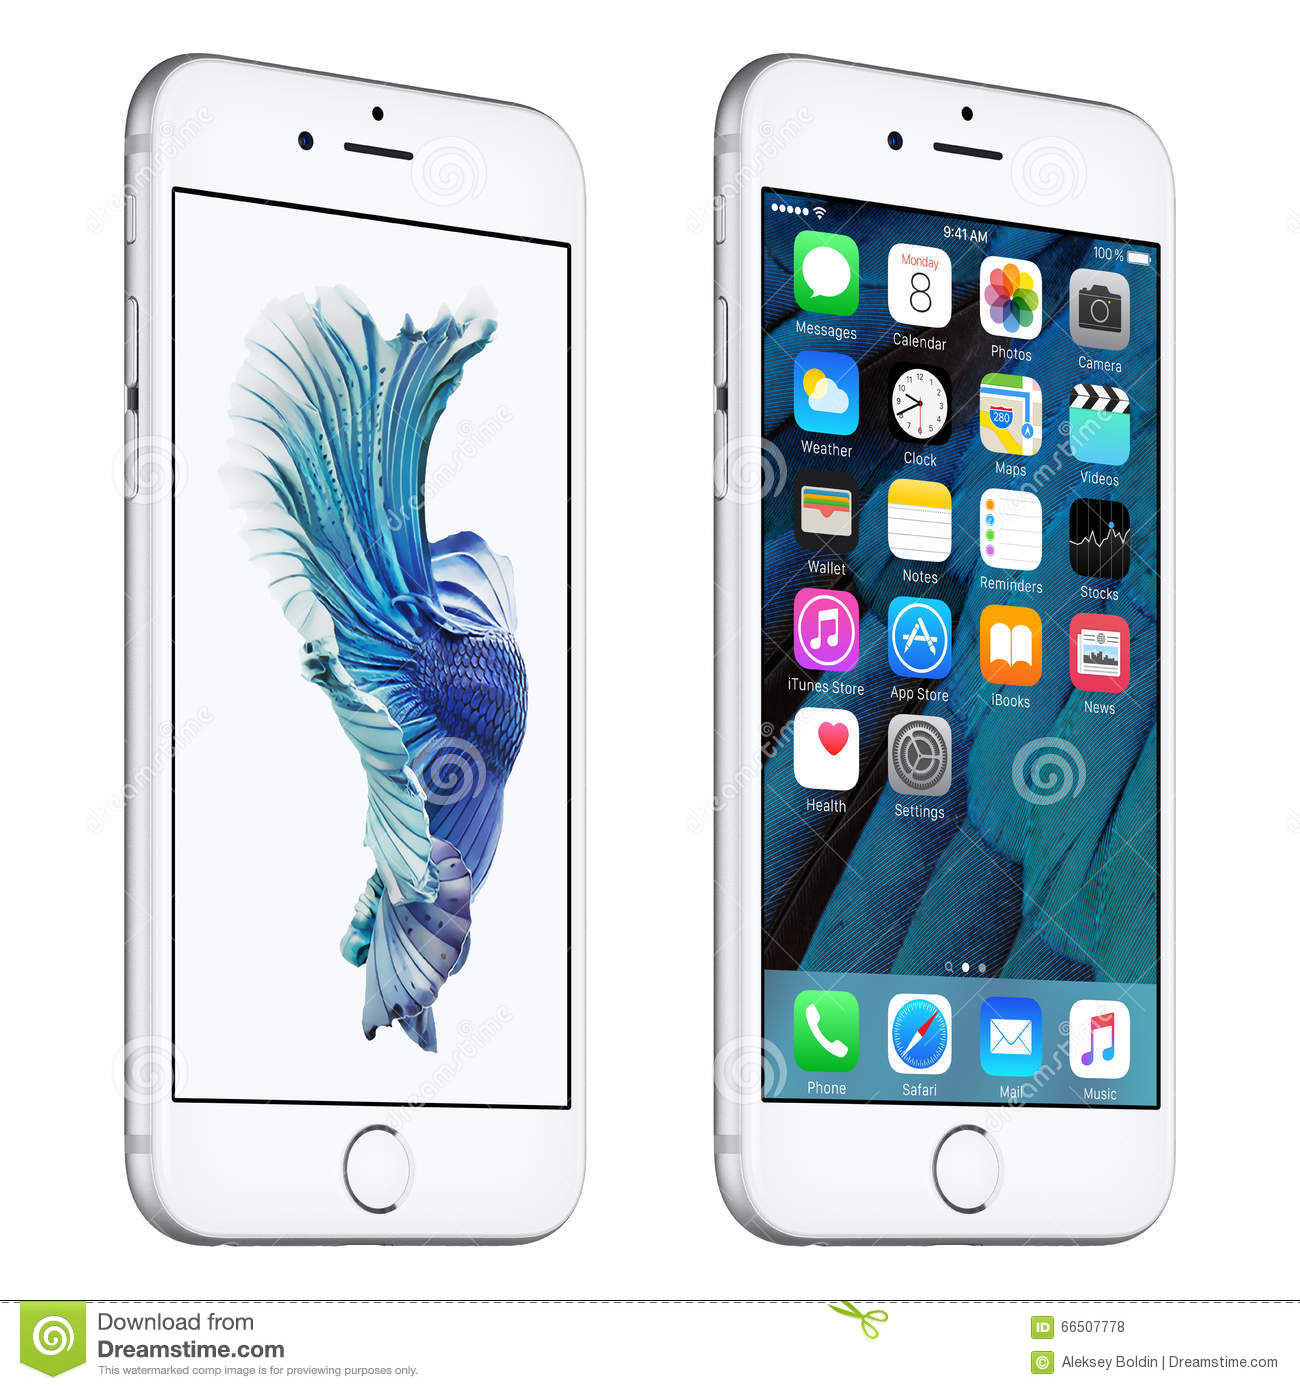 apple iphone 6 download picture